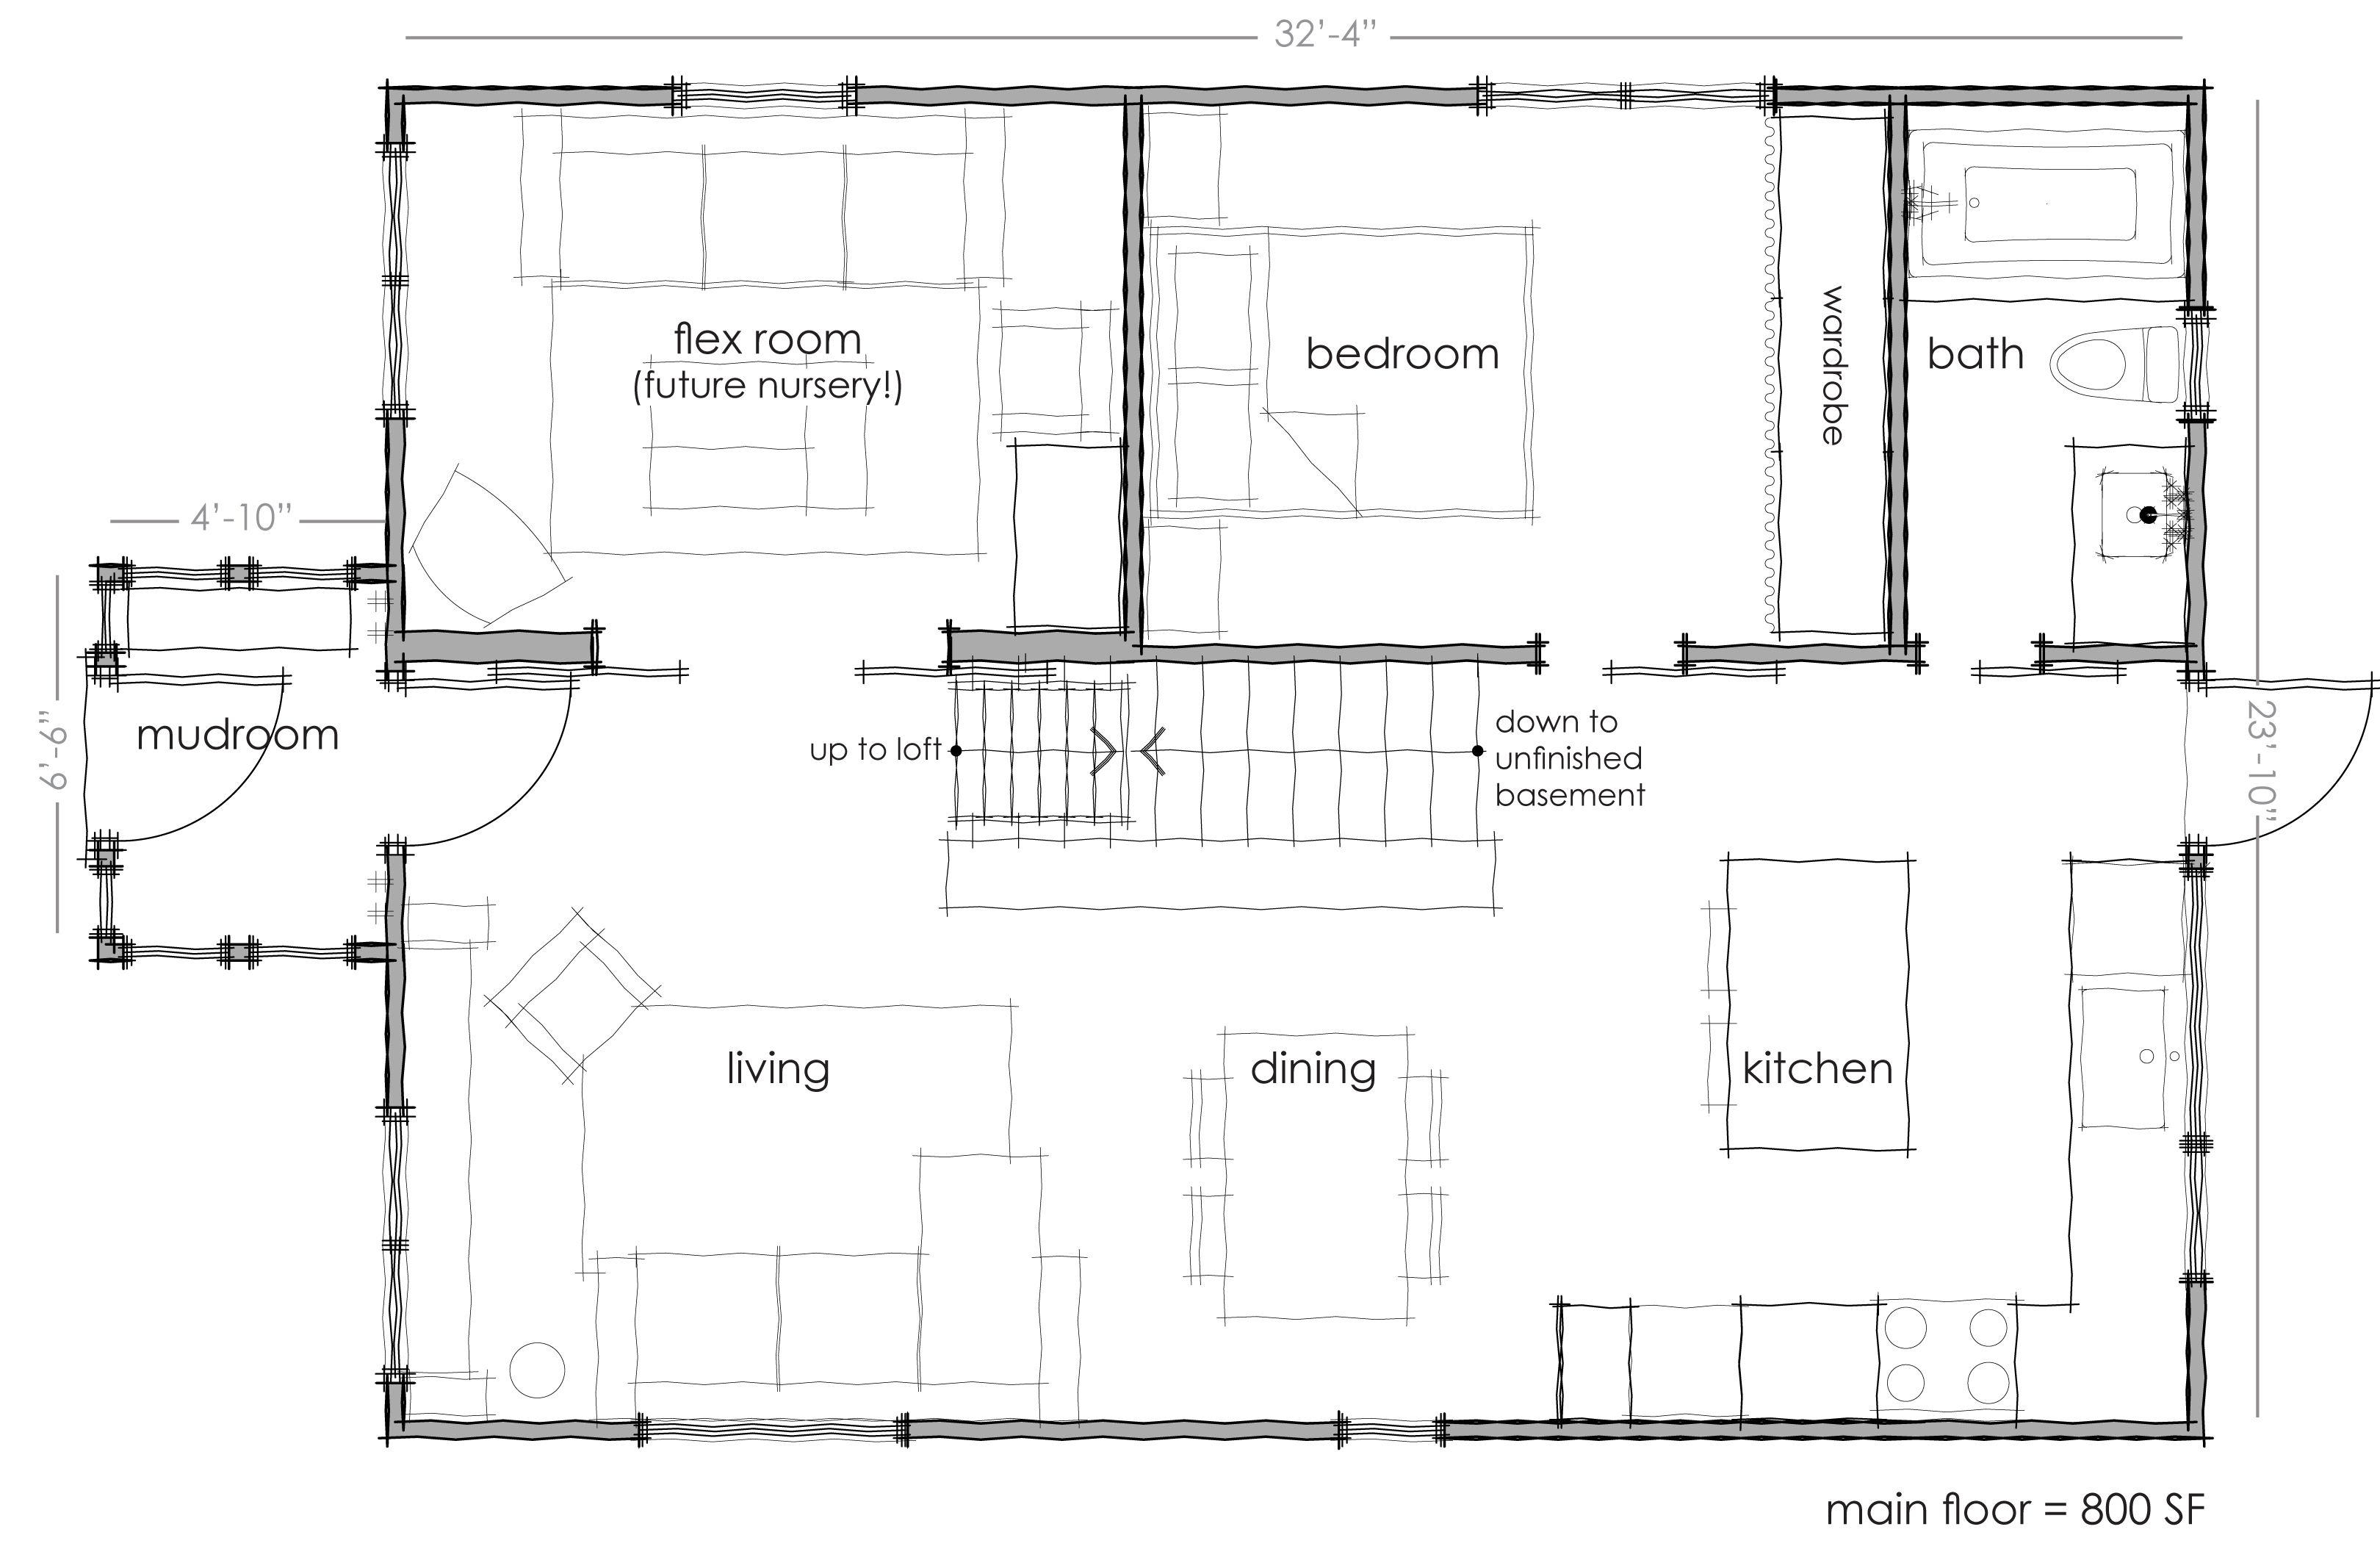 Design Chezerbey Rectangle House Plans Bathroom Floor Plans Simple House Design